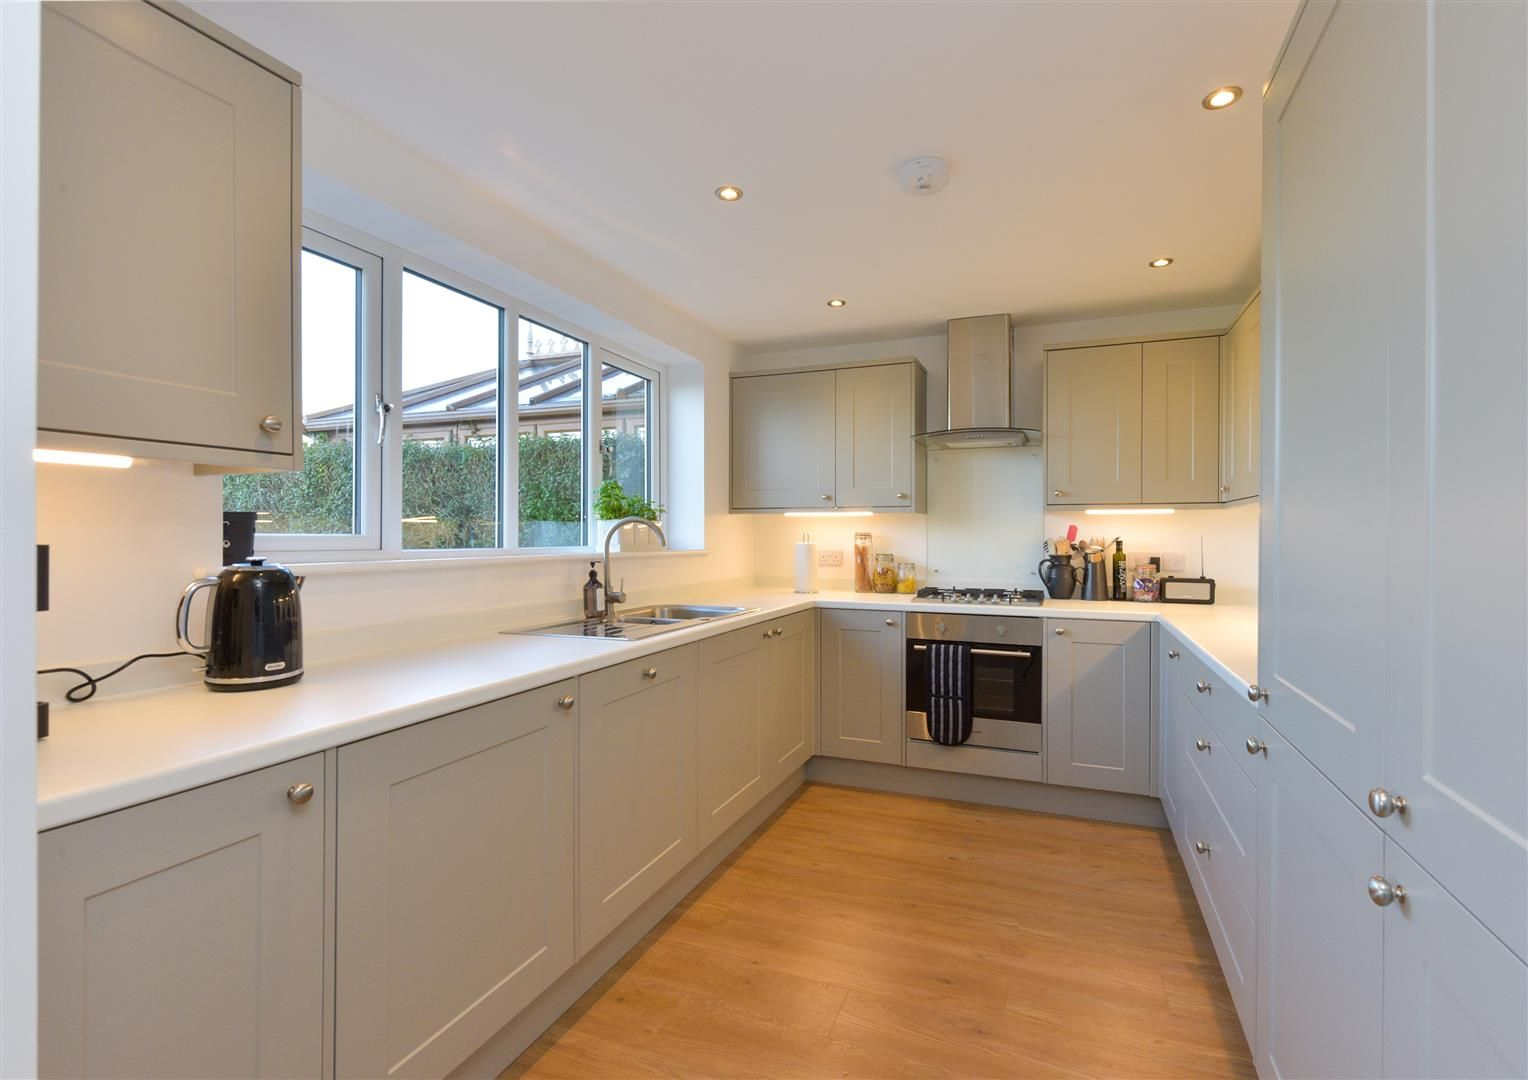 3 bed house for sale in Clent 3